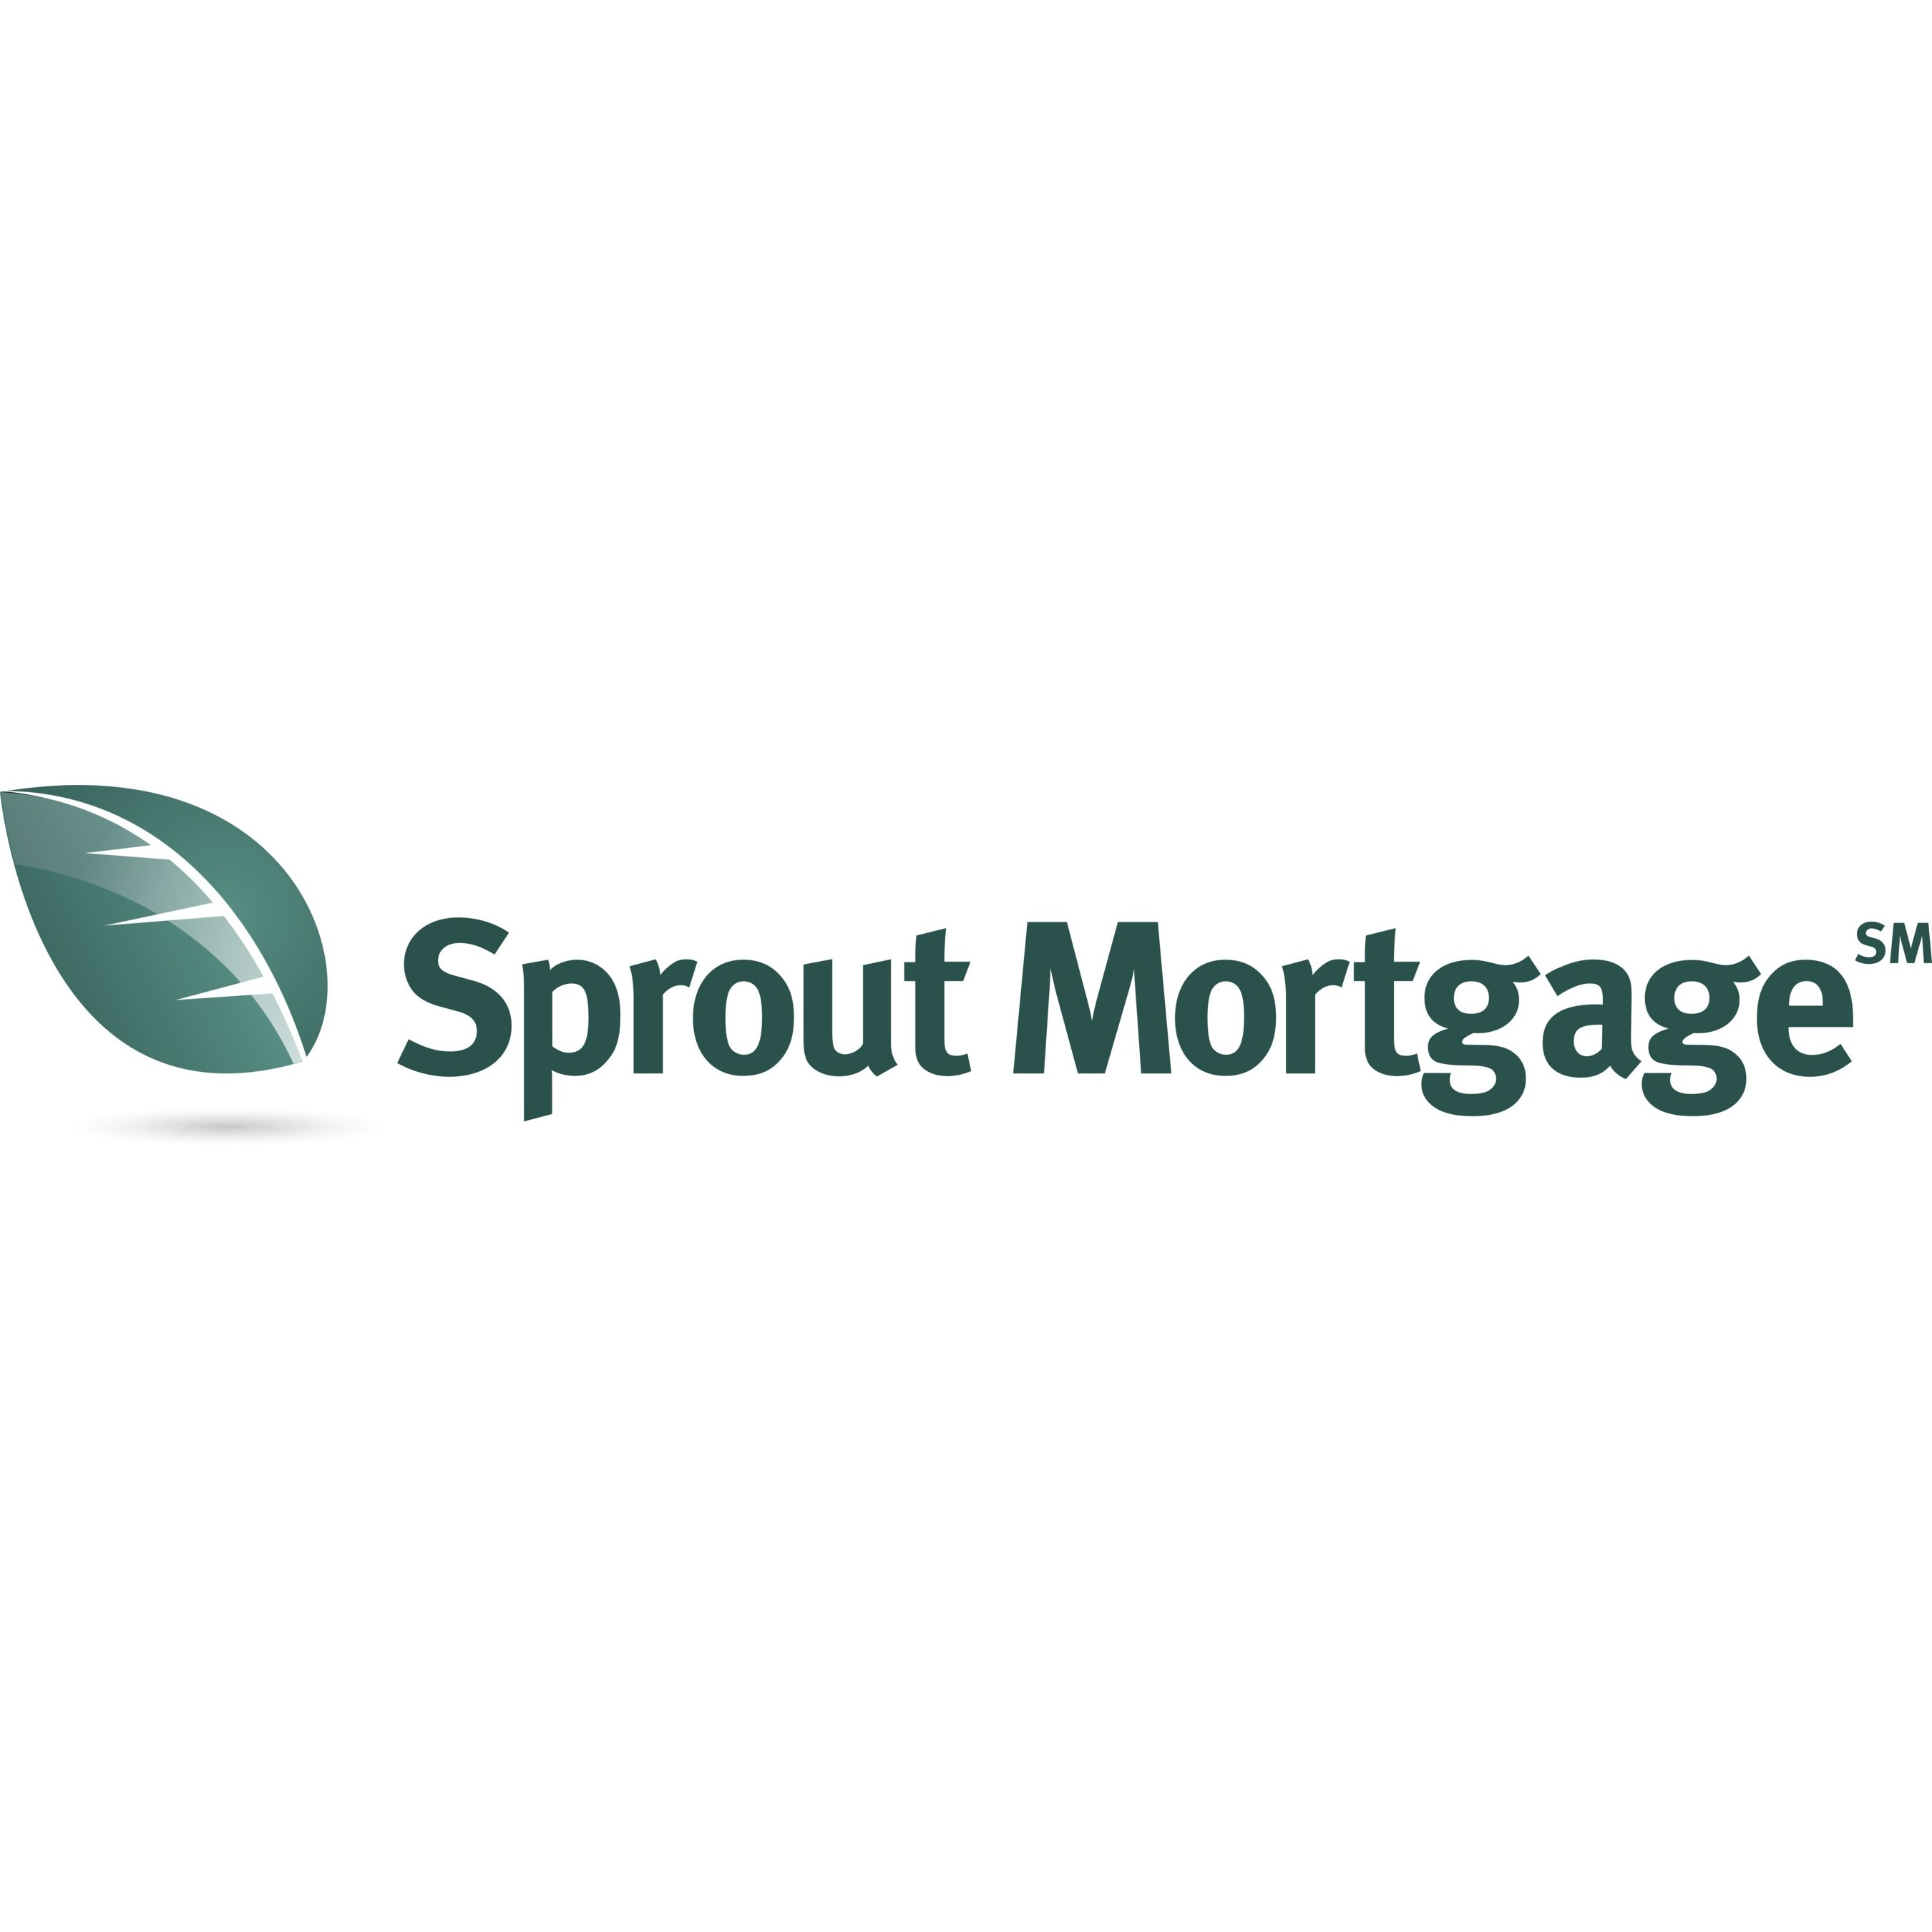 Sprout Mortgage Logo.